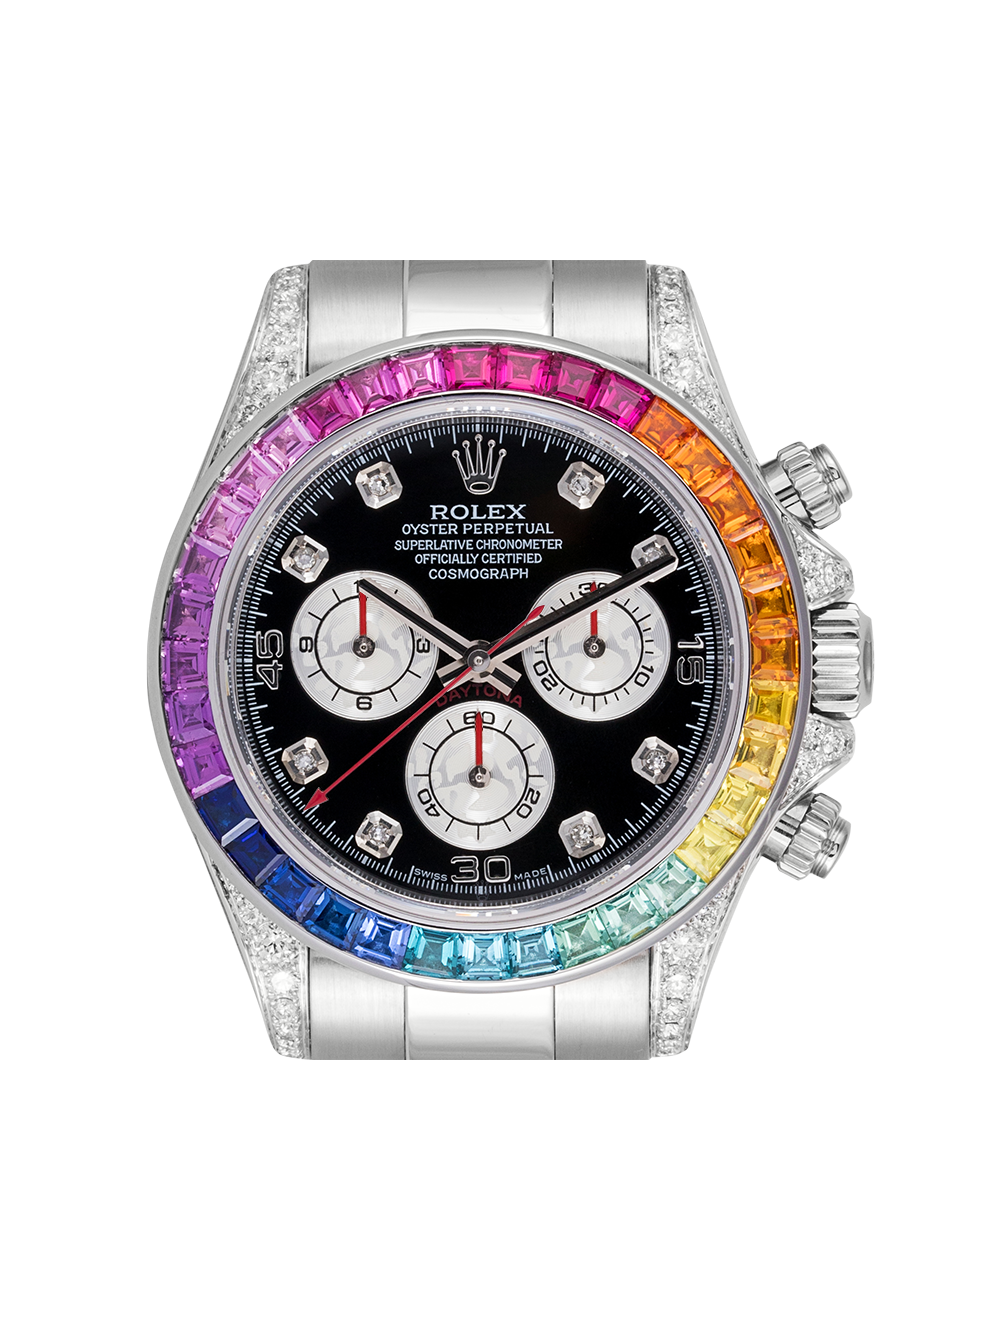 Rolex Cosmograph Daytona White Gold Rainbow Diamond Bezel 116509